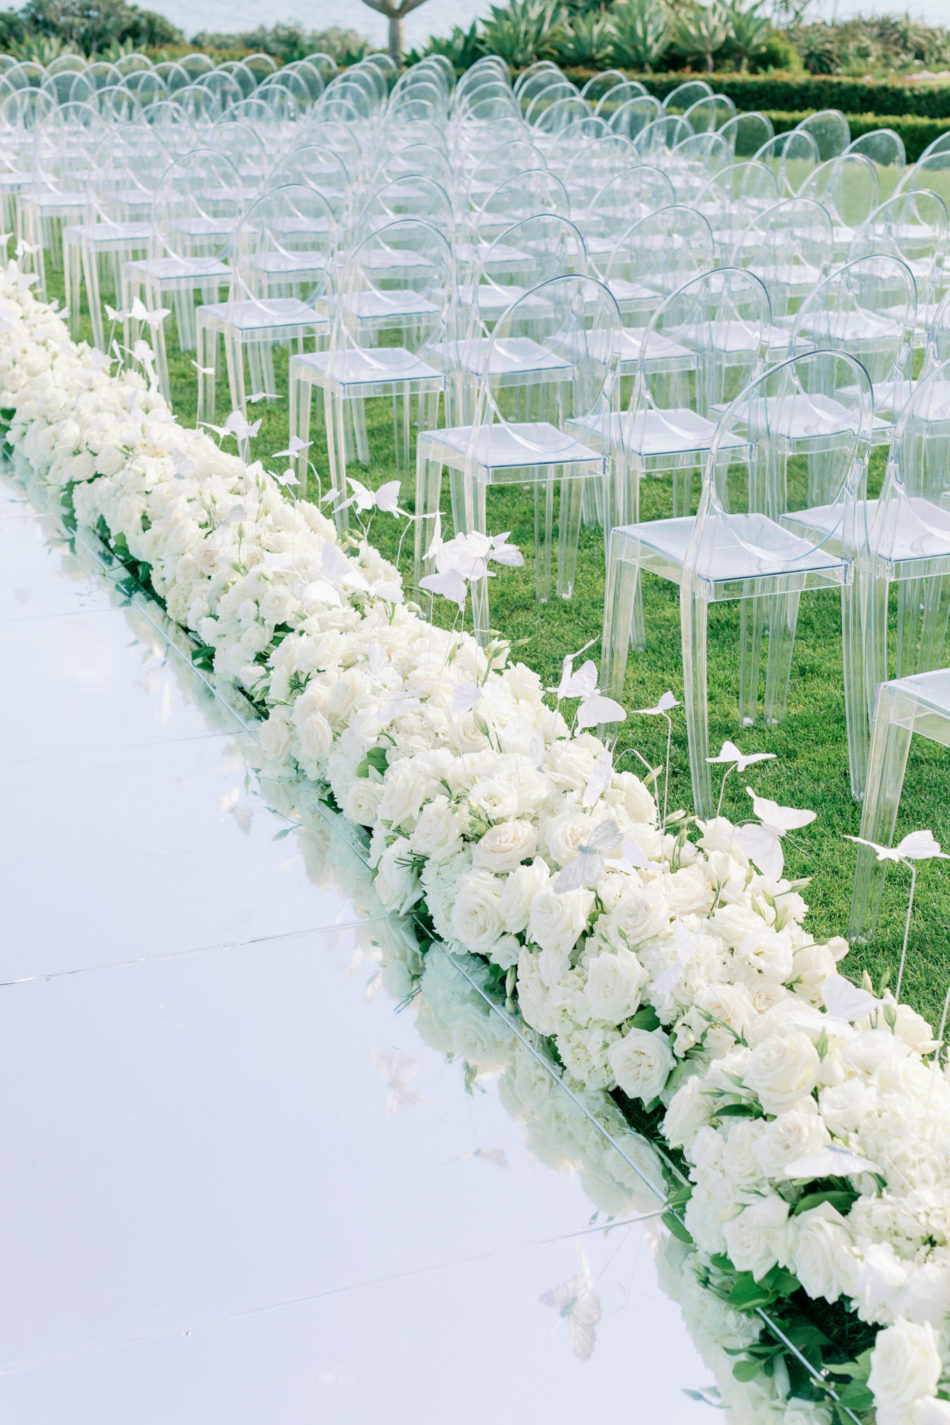 floral-filled aisle, mirrored aisle, lavish oceanfront wedding, floral design, florist, wedding florist, event florist, wedding flowers, event flowers, cabo san lucas weddings, cabo san lucas wedding florist, cabo san lucas florist, cabo san lucas floral design, cabo rentals, flowers and events